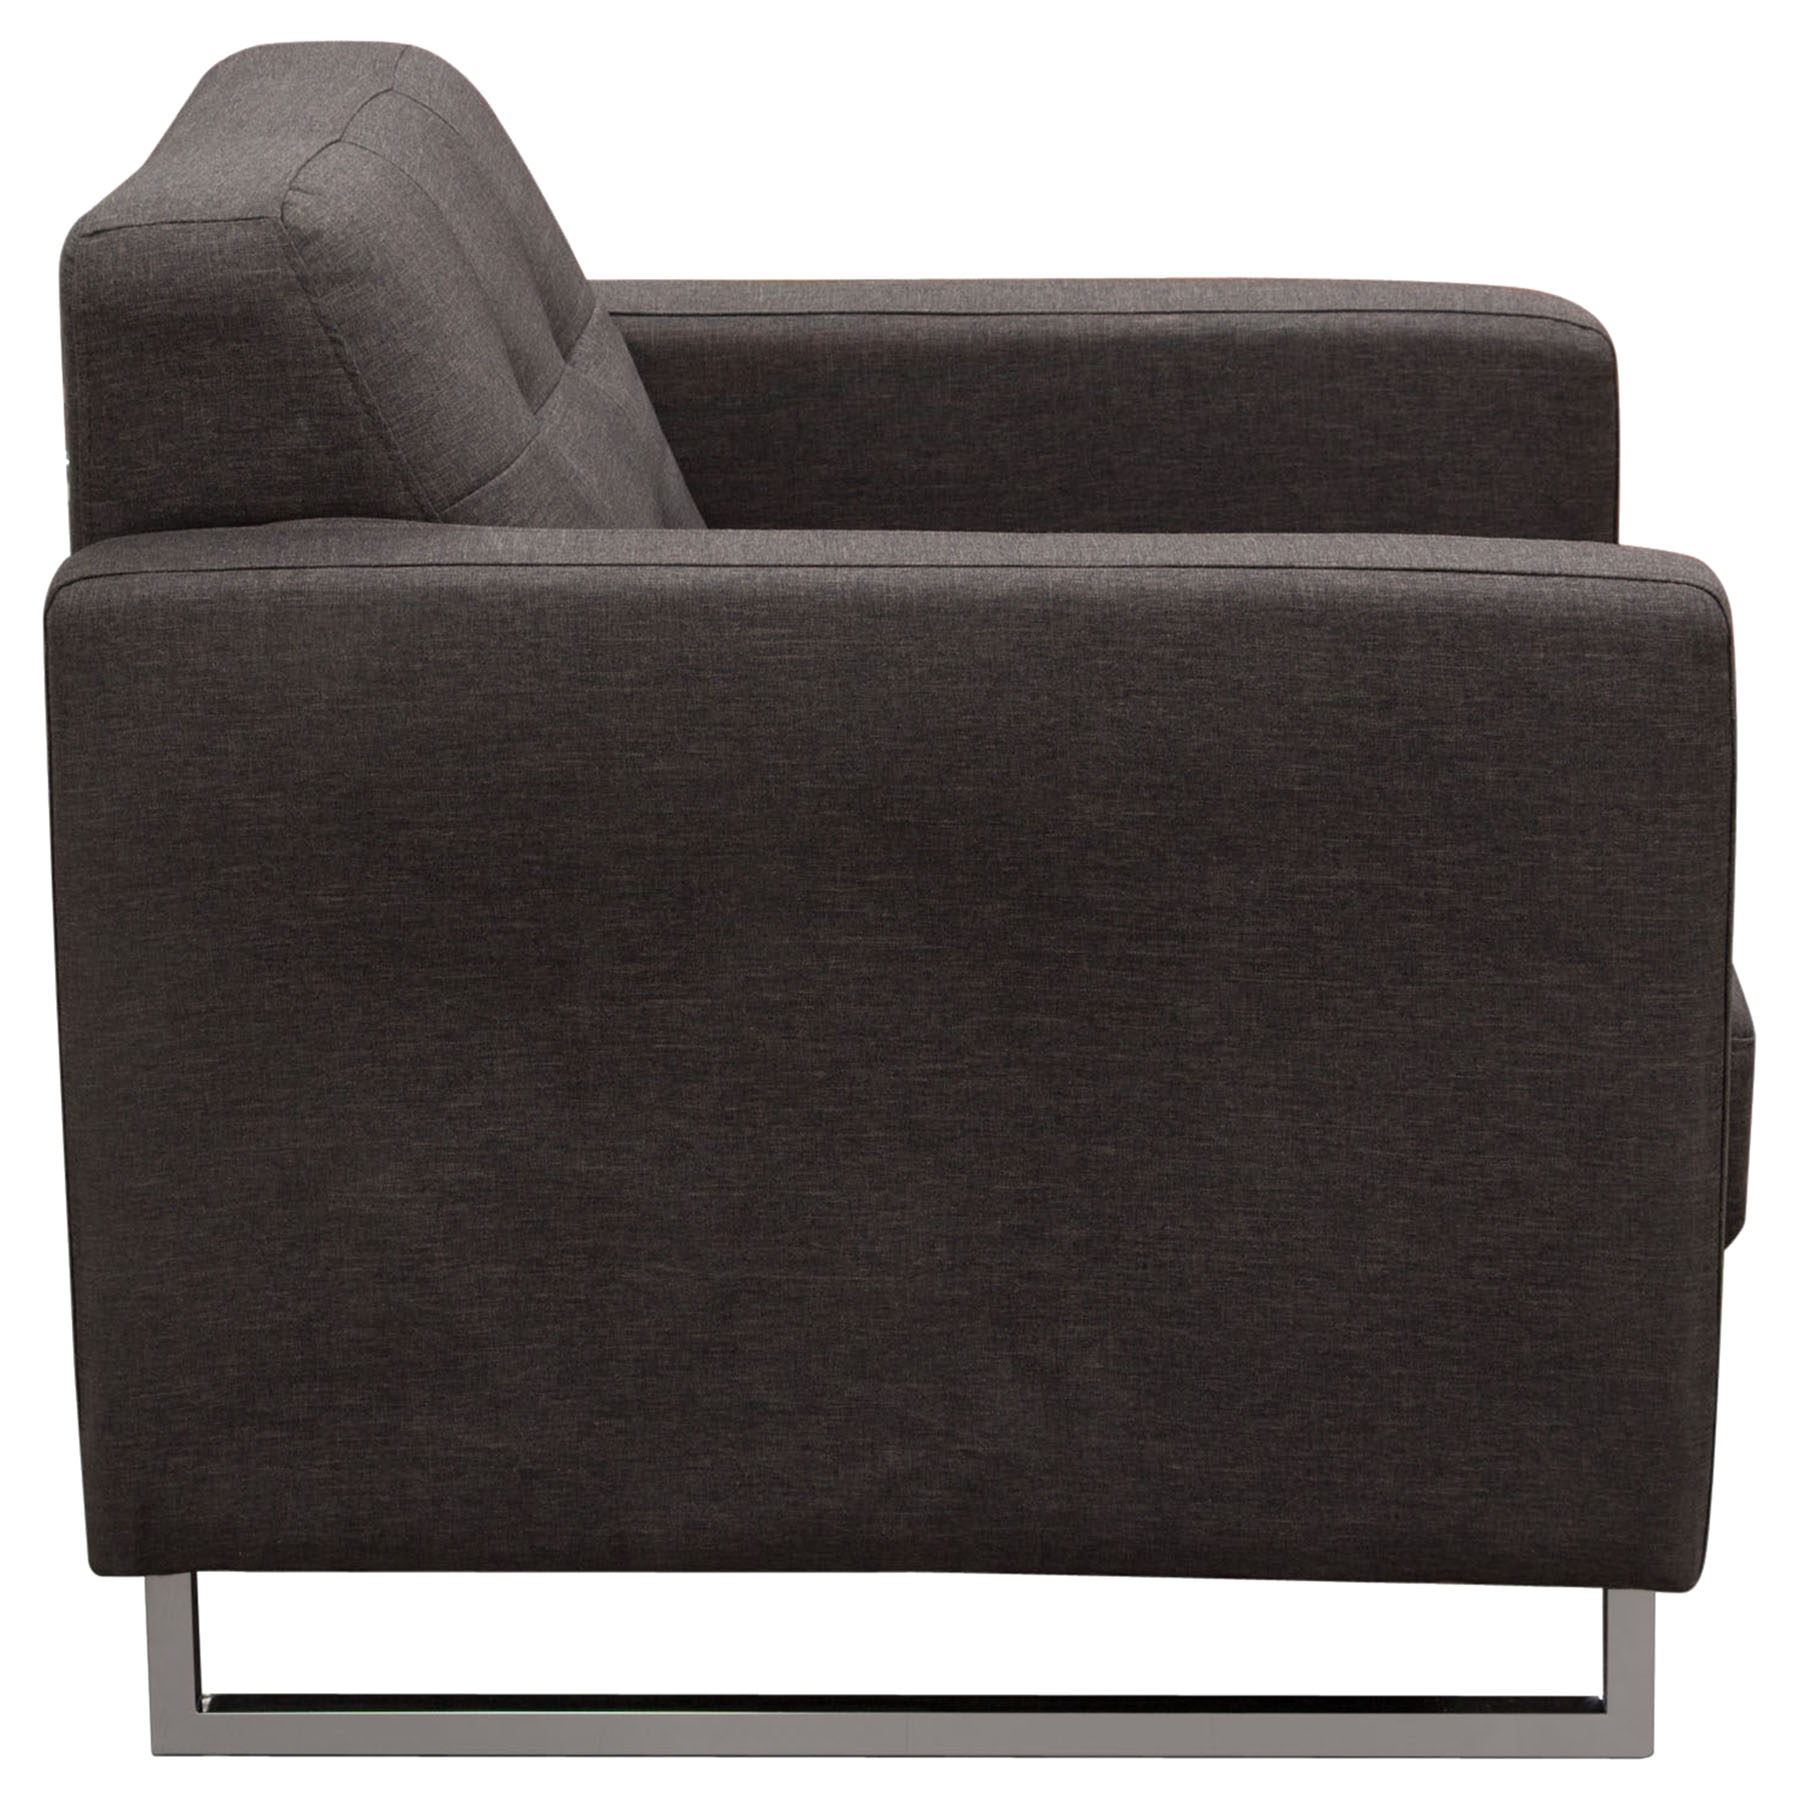 Opus Arm Chair Tufted Chocolate Dcg Stores